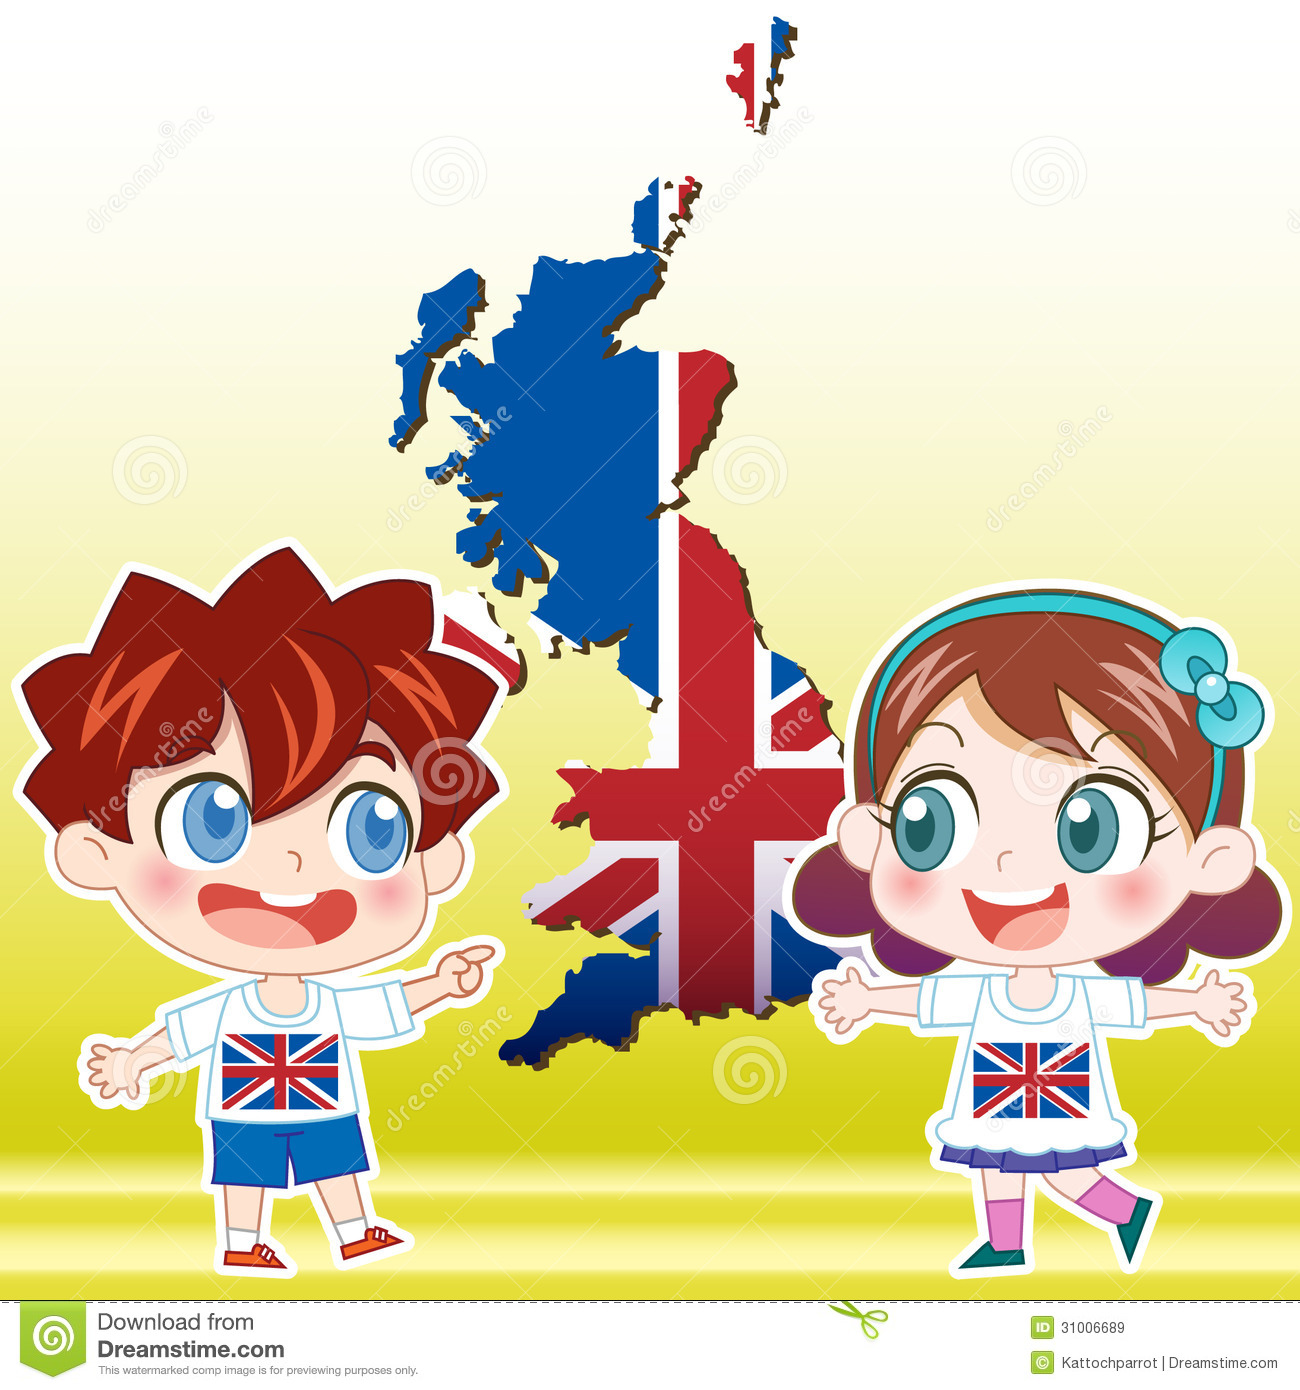 Kids Map Of England.England Kids Stock Vector Illustration Of Unique Clothes 31006689